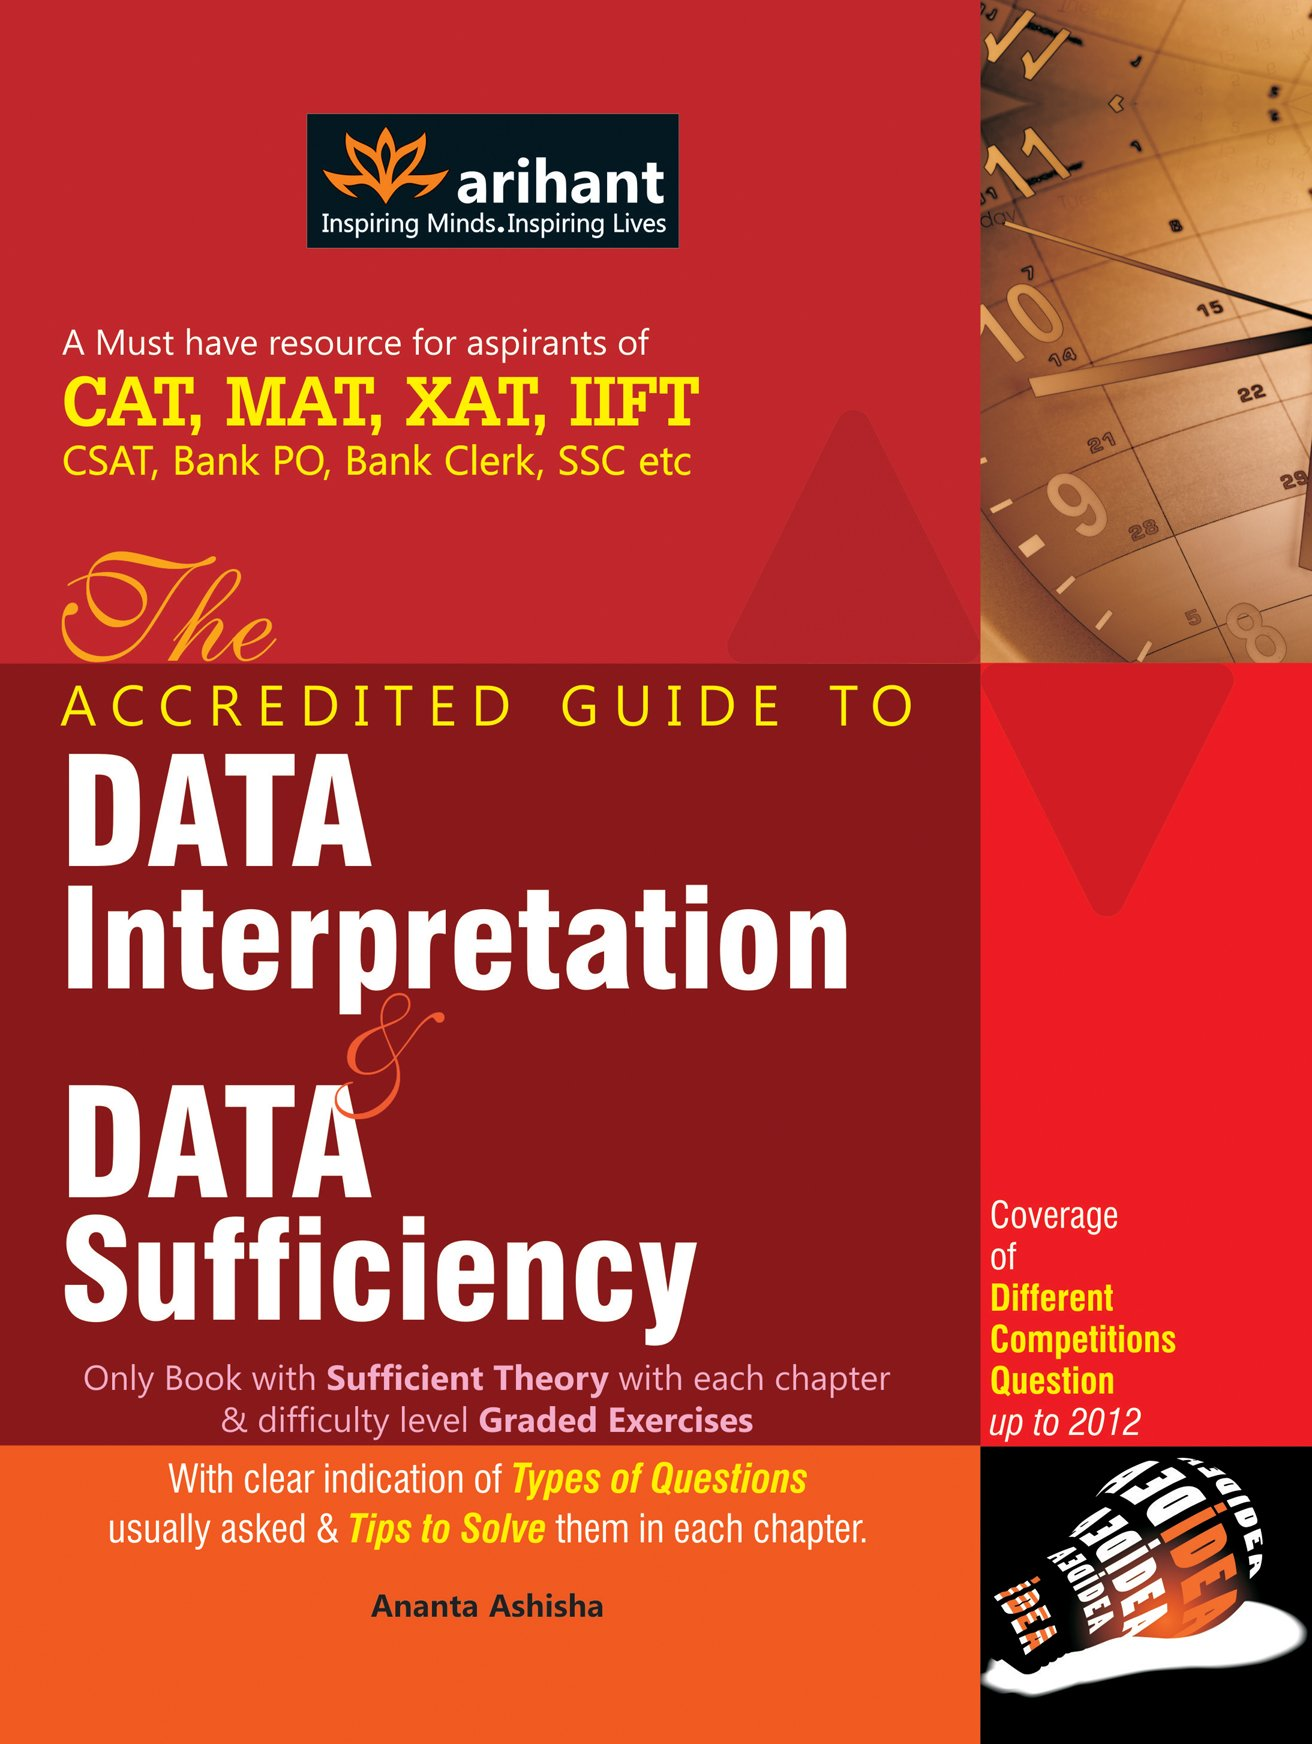 Buy accredited guide to data interpretation and data sufficiency buy accredited guide to data interpretation and data sufficiency book online at low prices in india accredited guide to data interpretation and data fandeluxe Image collections